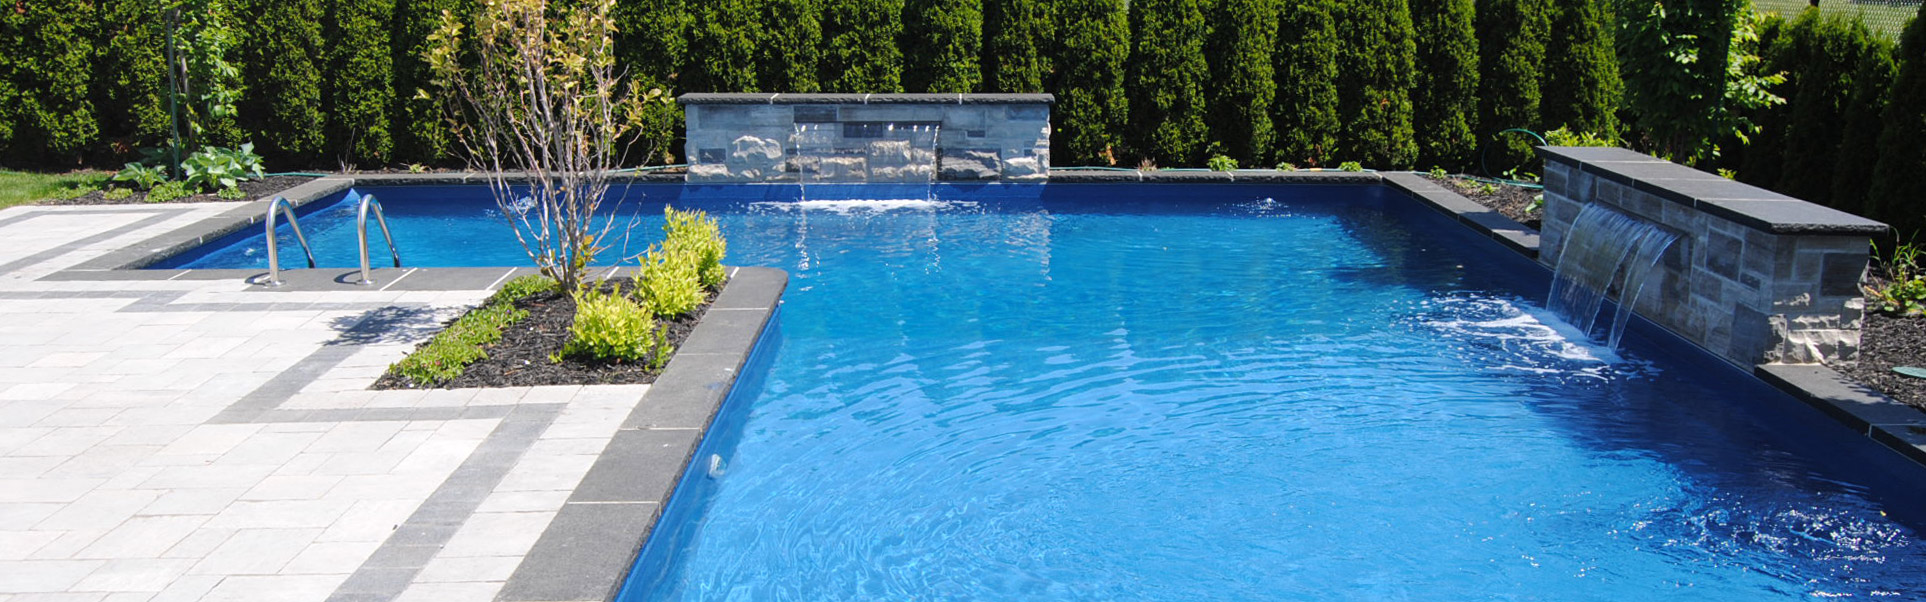 How to choose a swimming pool liner pioneer family pools for Inground pool prices installed